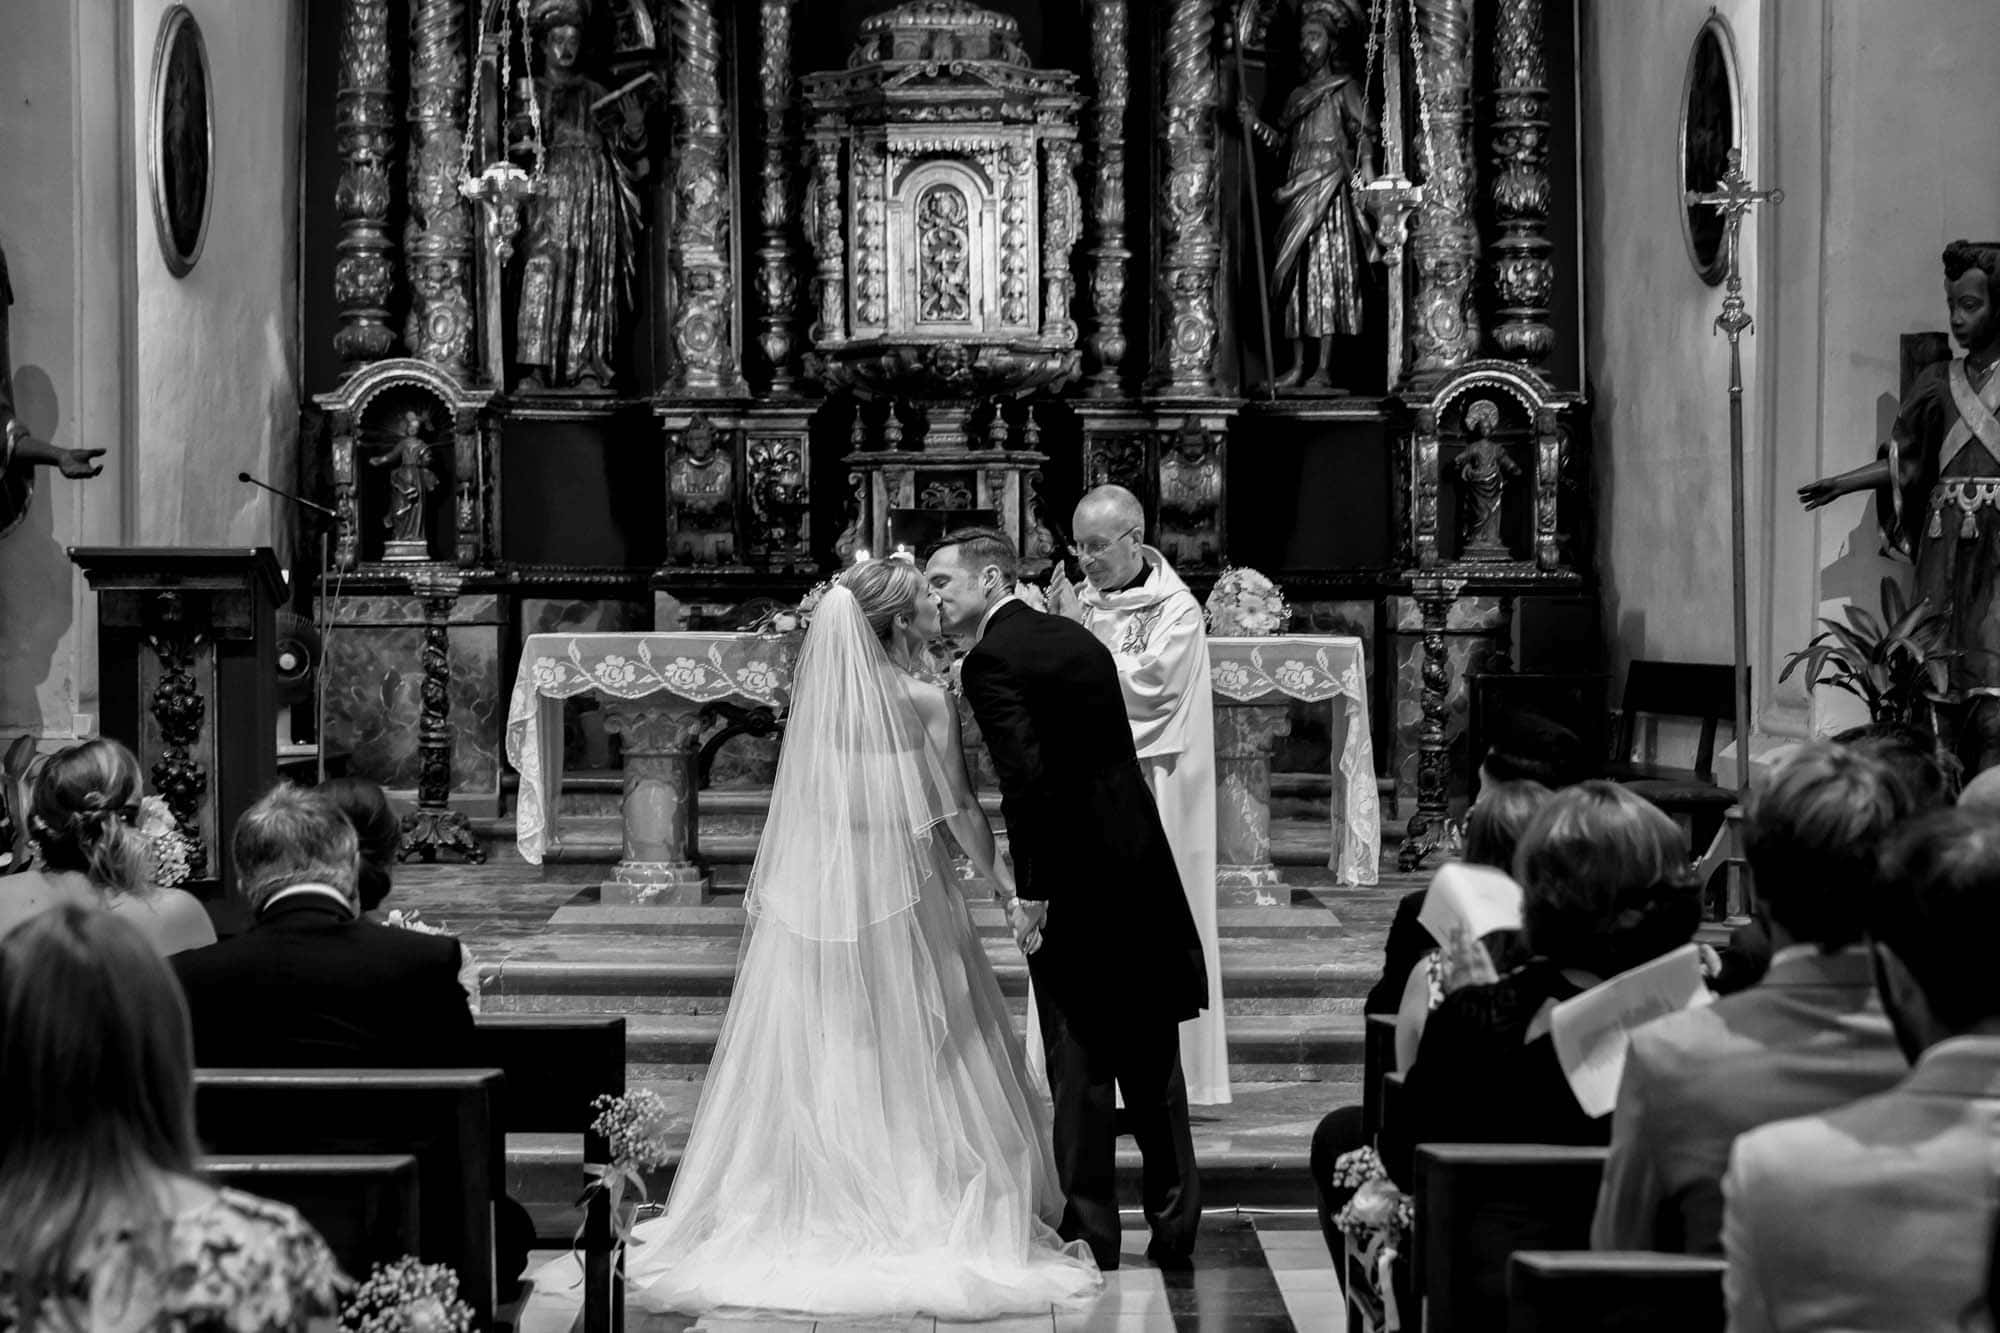 The first kiss after their marriage at Fornalutx Church in Mallorca